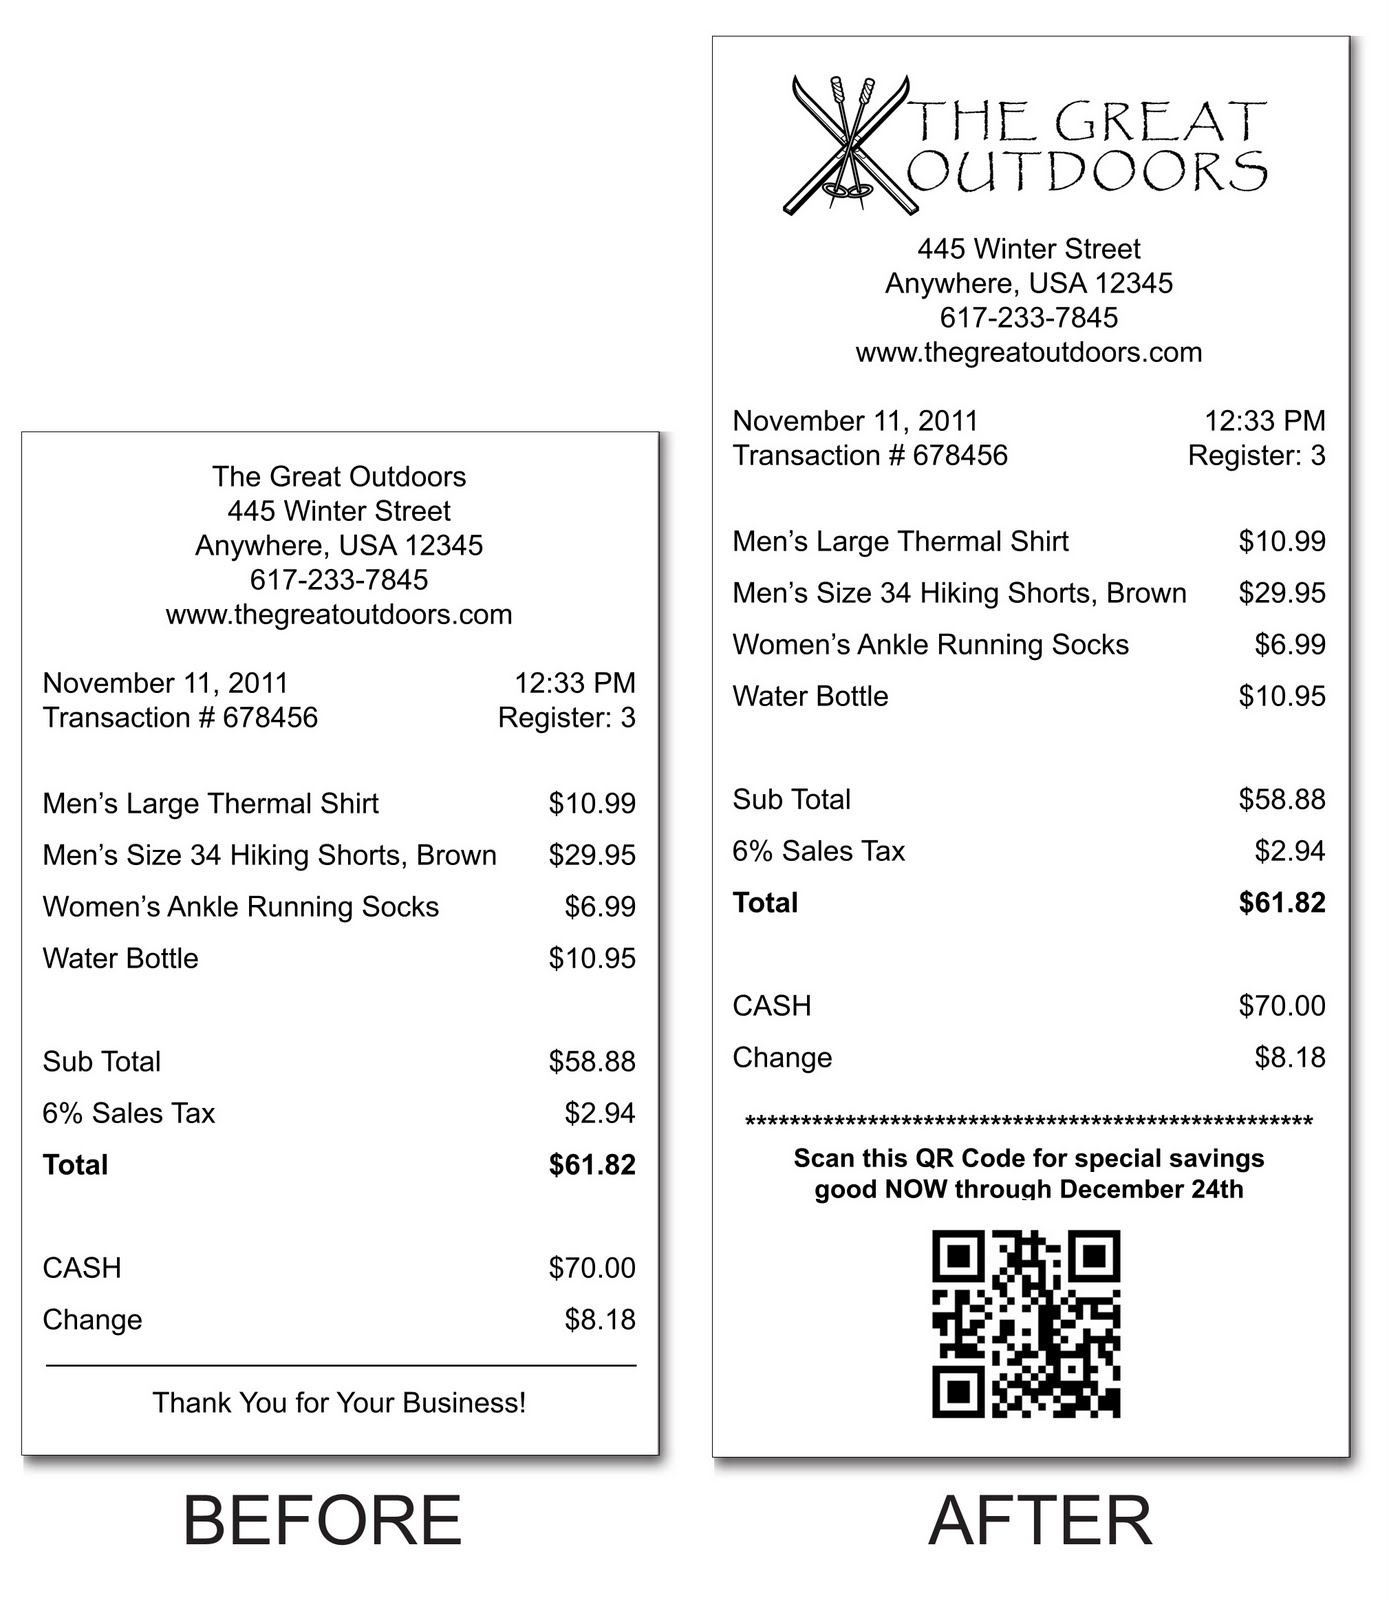 Point of Sale Supplies Blog: QR Codes On Receipts